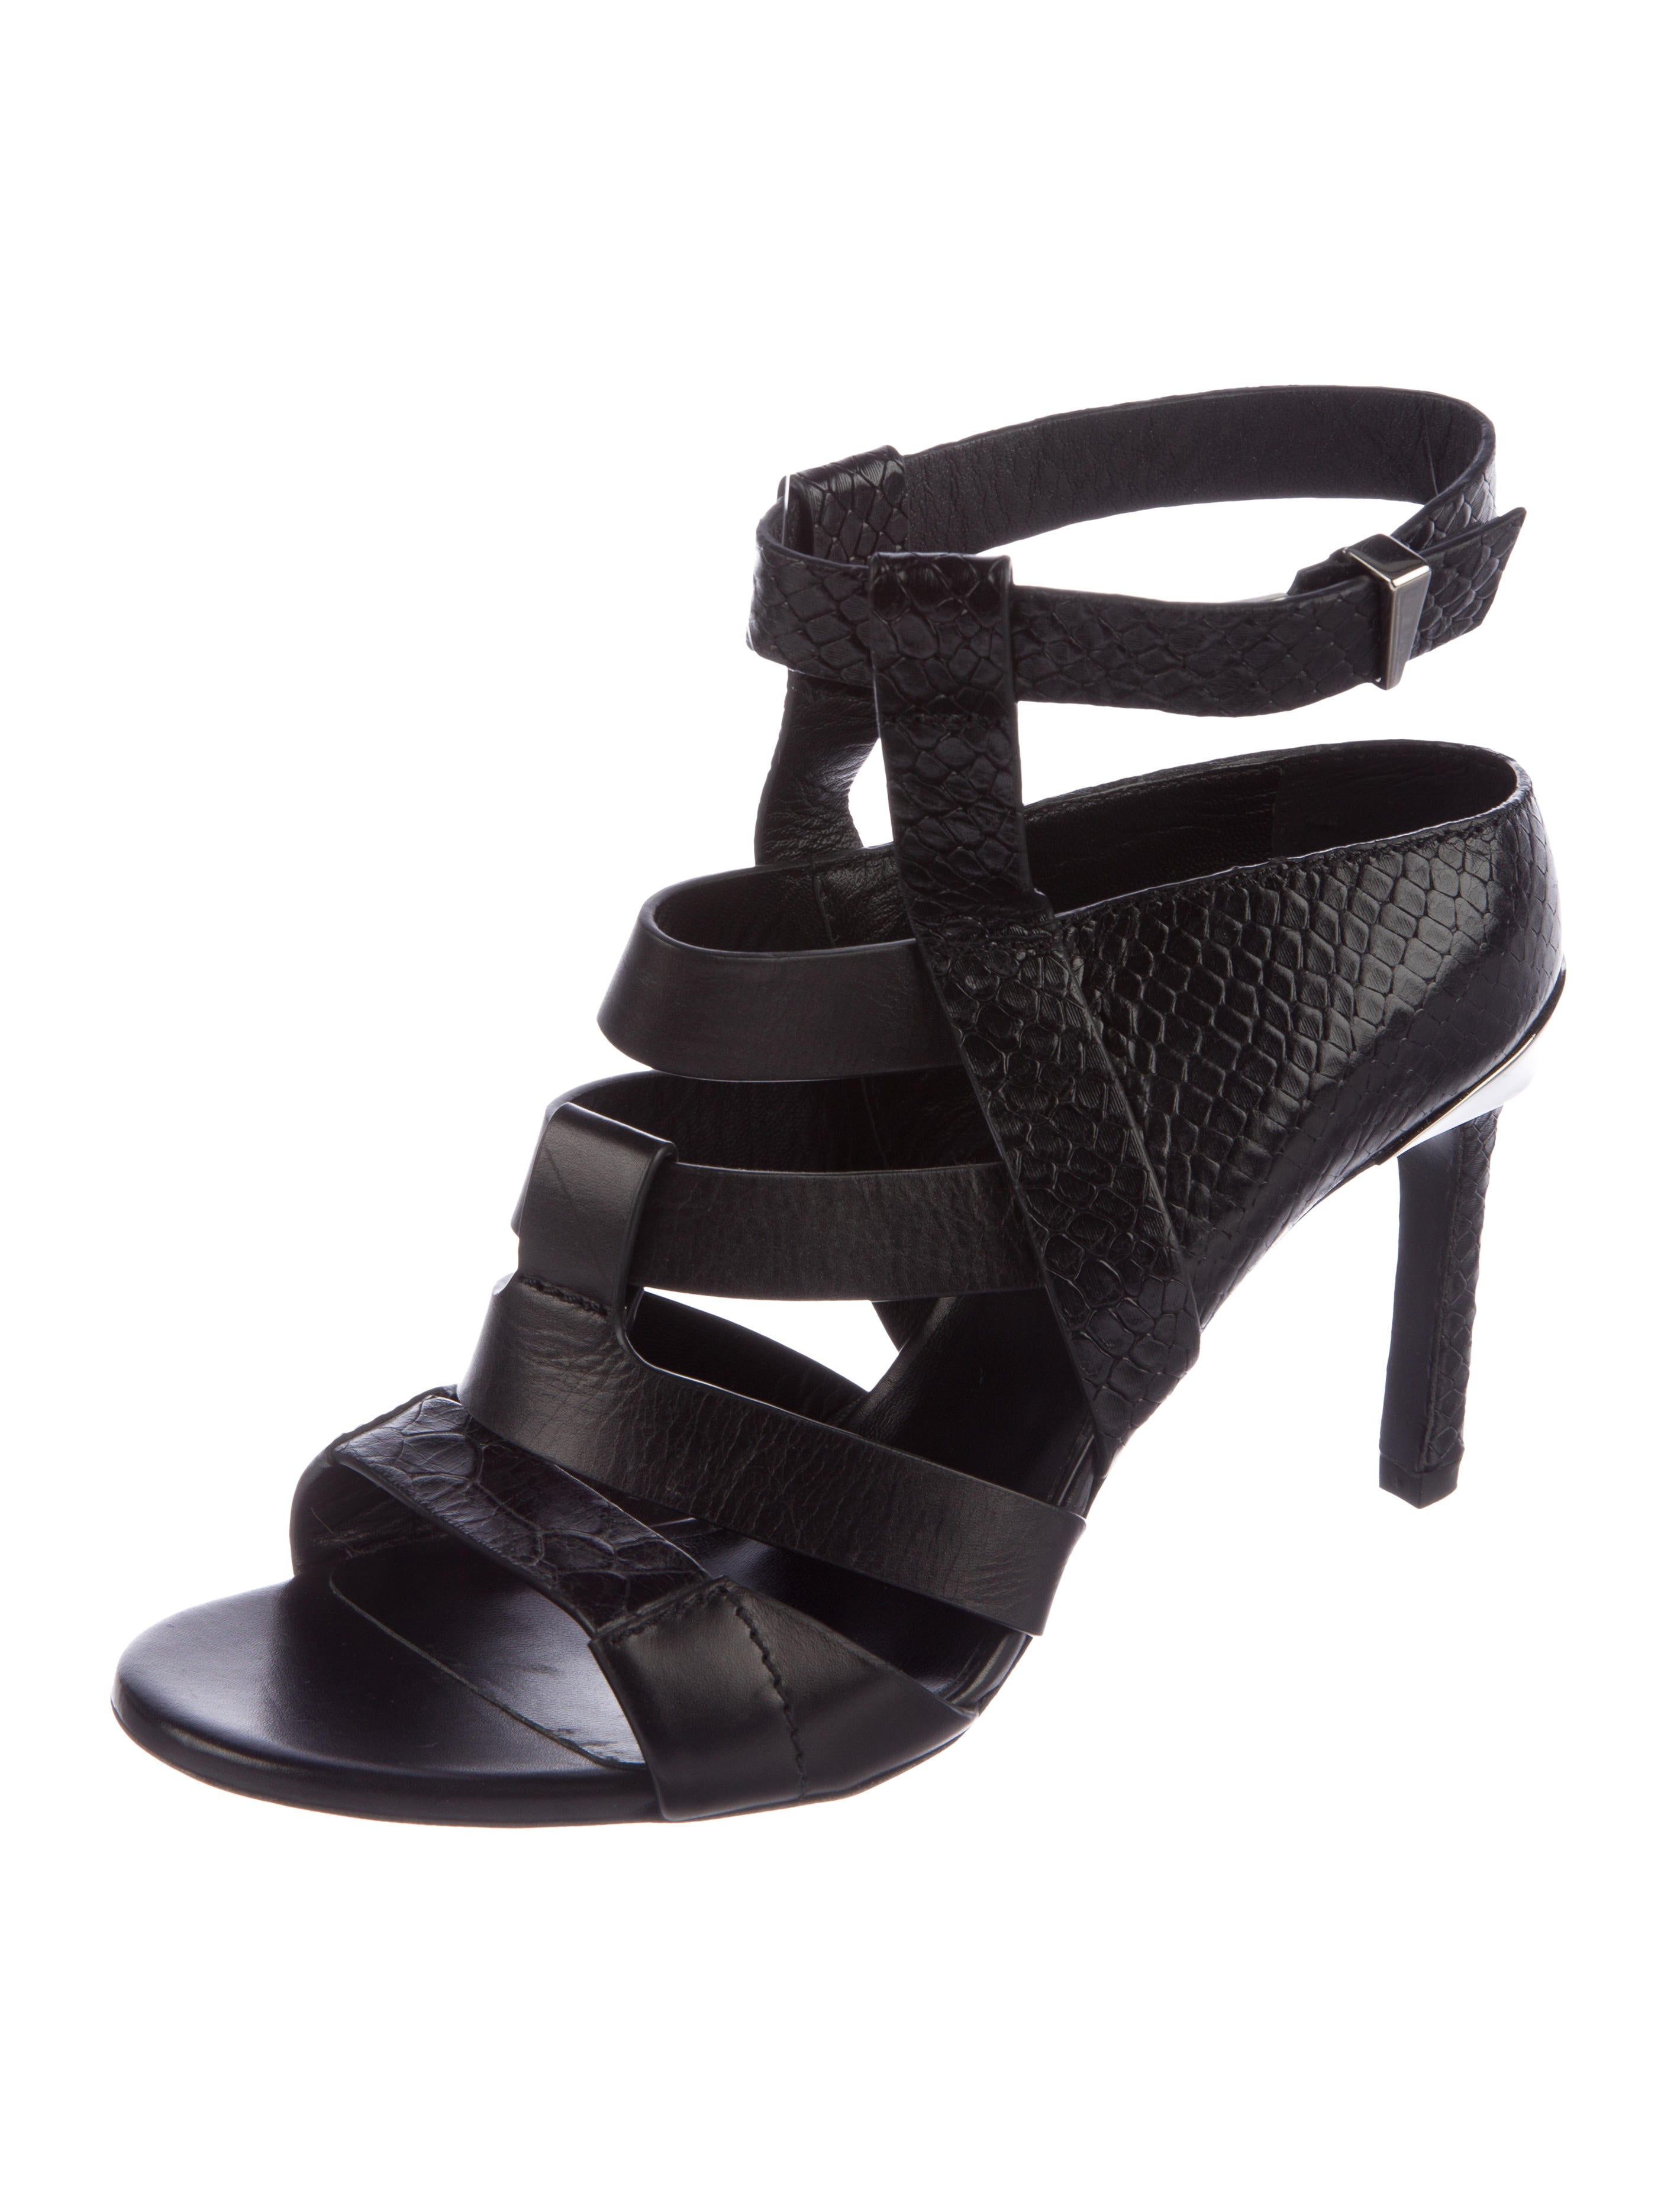 clearance comfortable discount largest supplier Prabal Gurung Embossed Cage Sandals GQHQlpsJ6